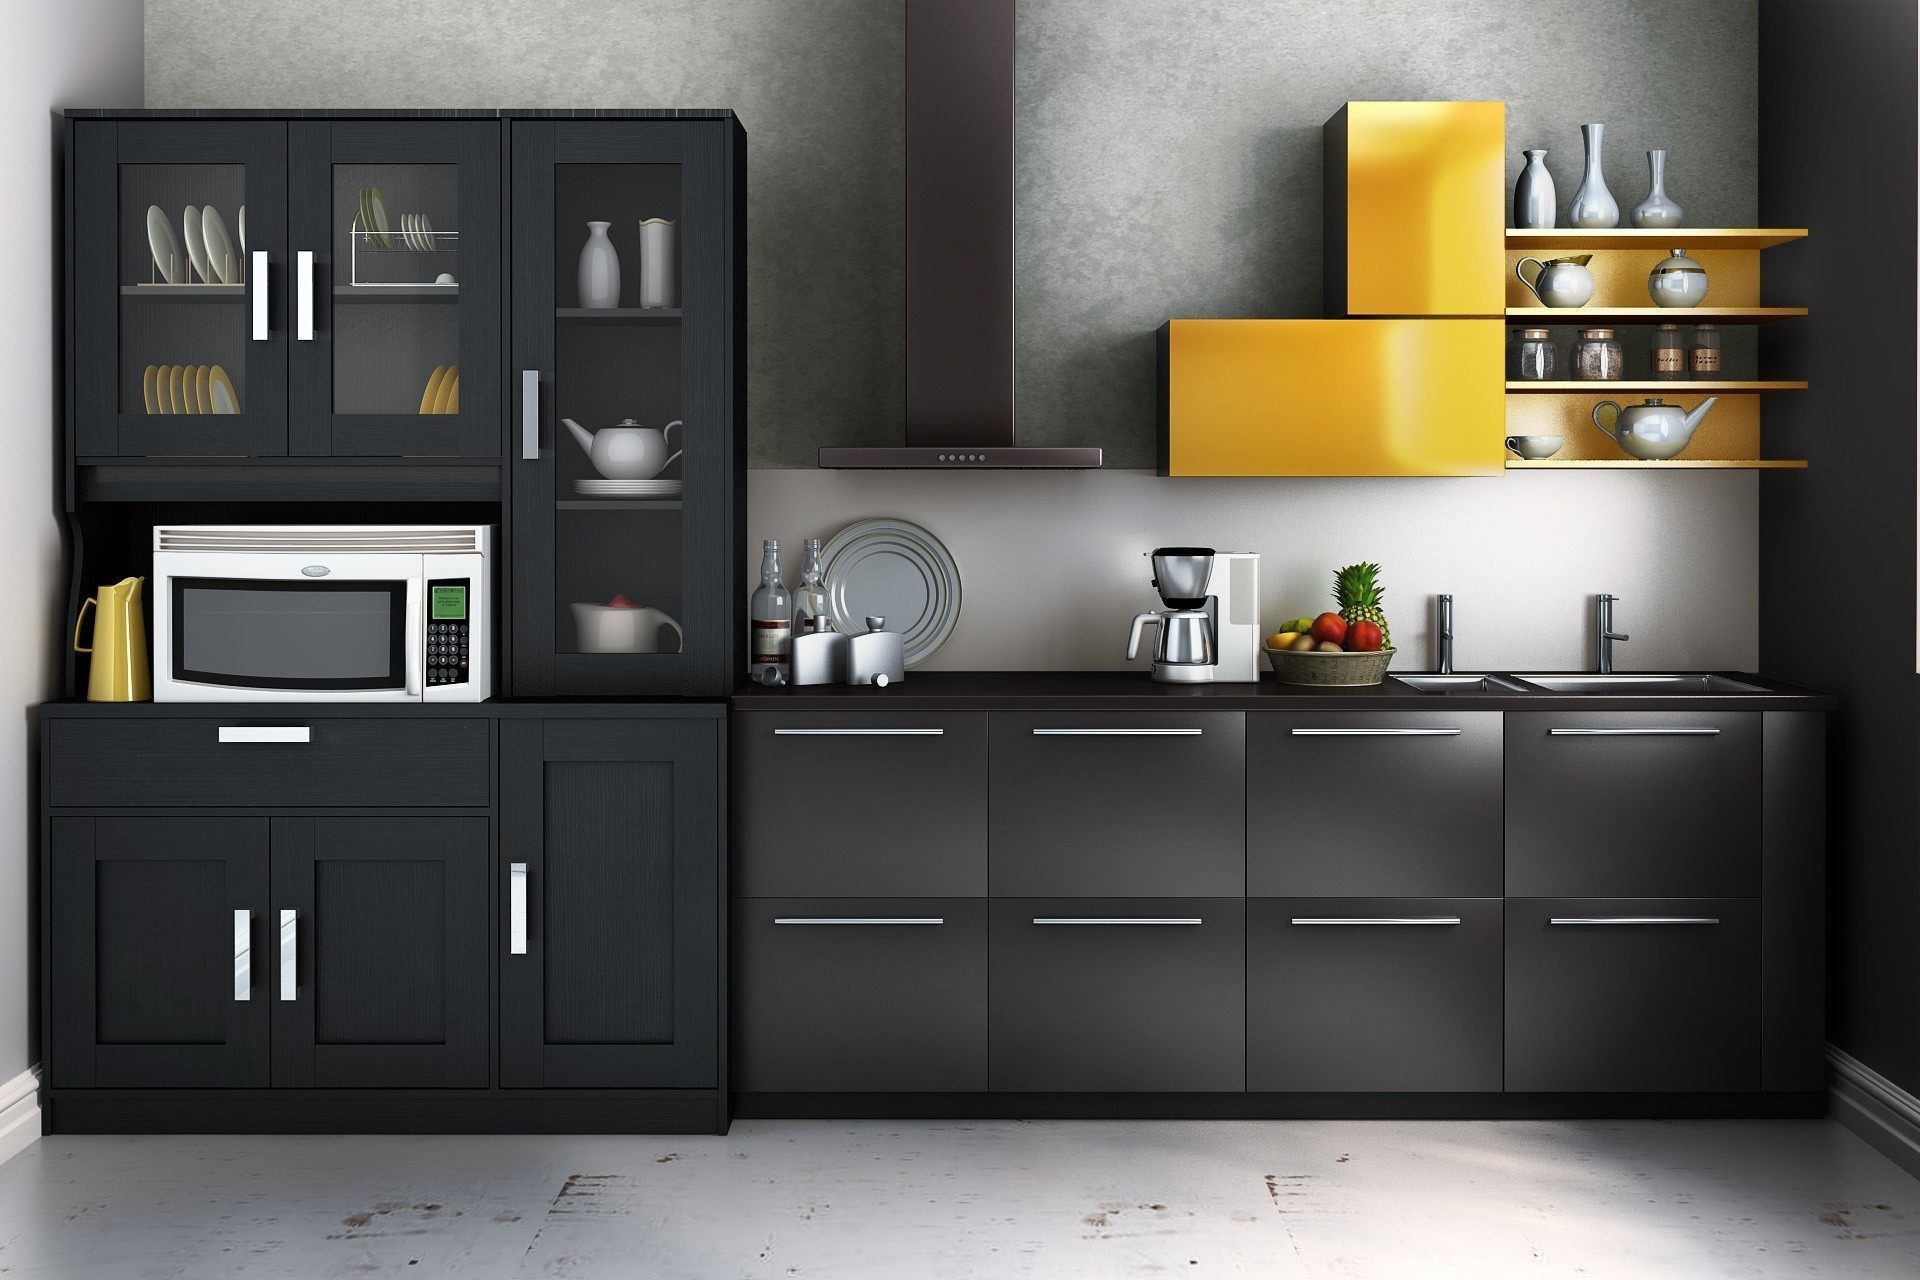 kitchen furniture set: give your kitchen a complete makeover